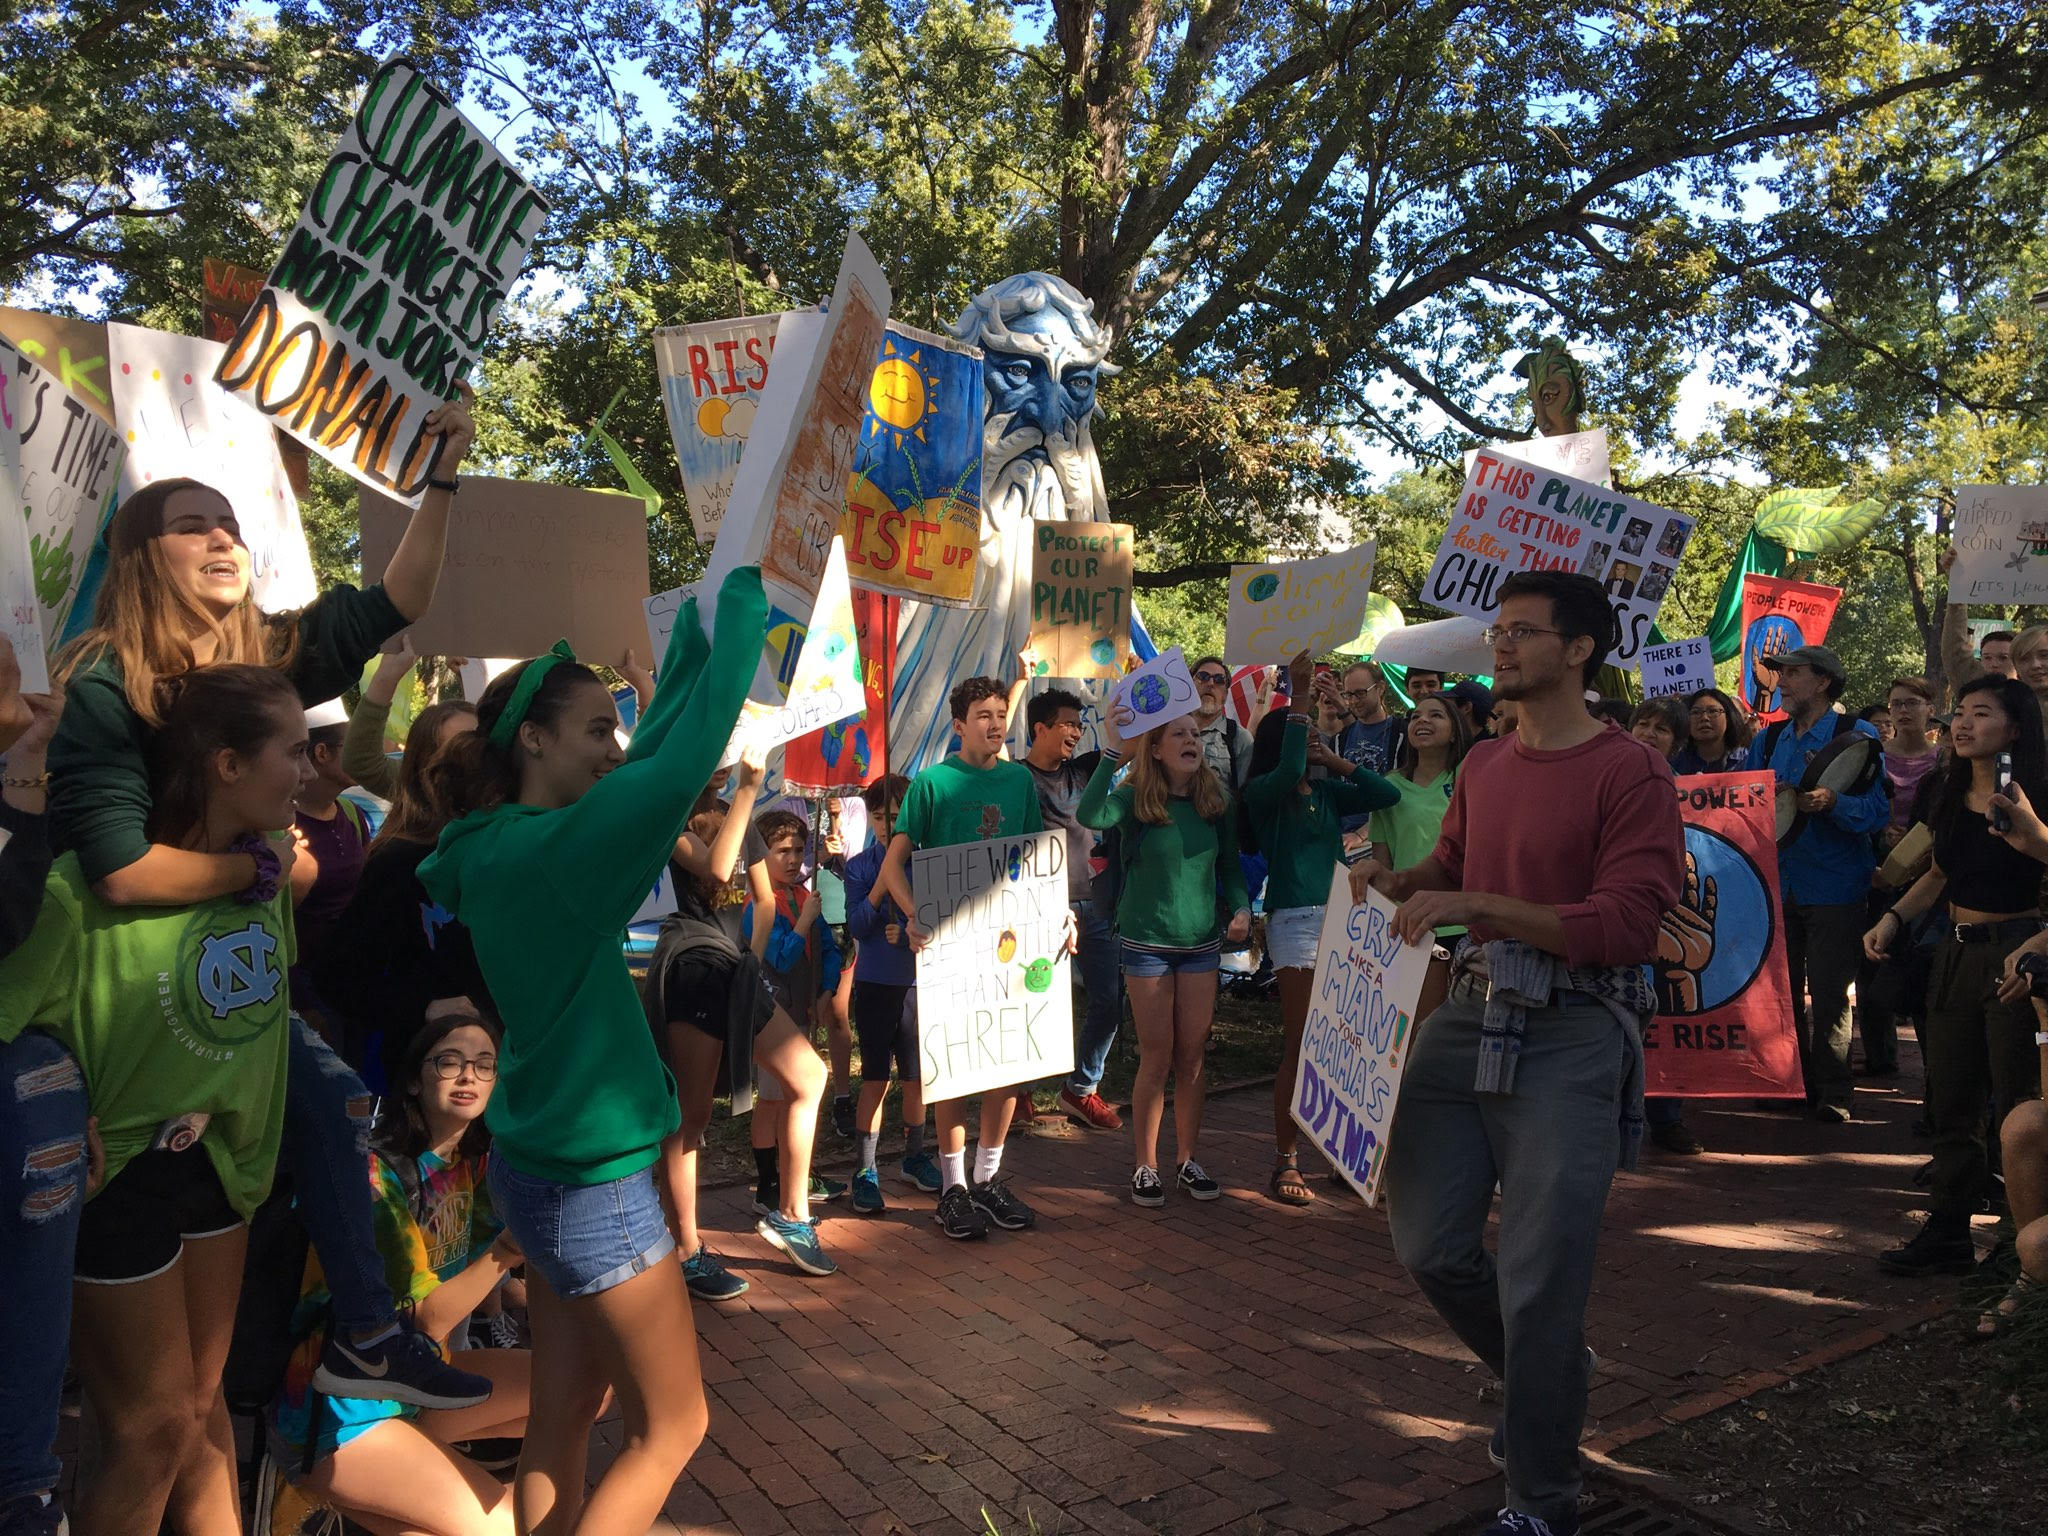 CHS students walk out to raise awareness about climate change, joining thousands worldwide